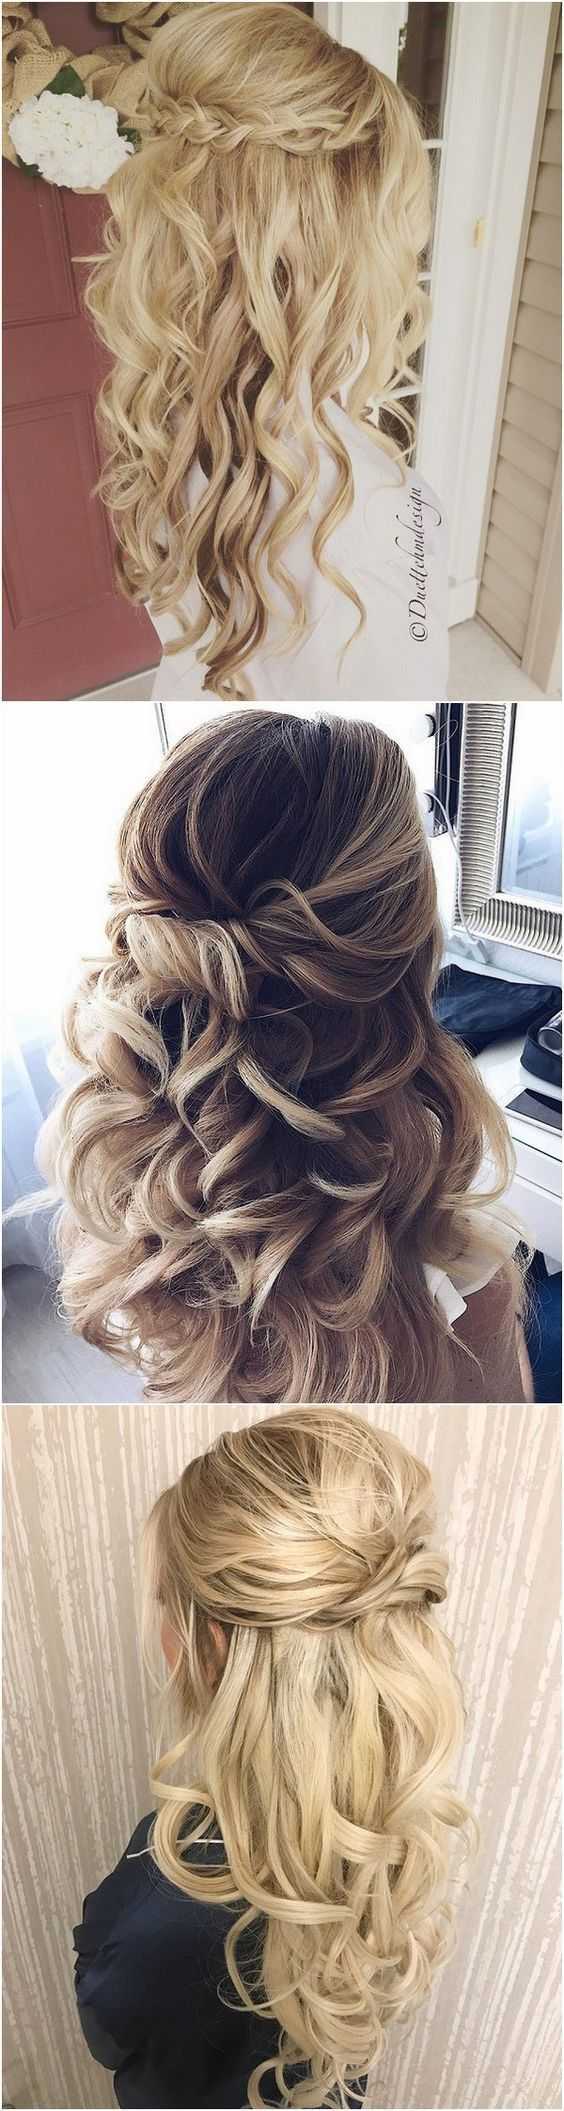 Top wedding hairstyles for trends soft waves